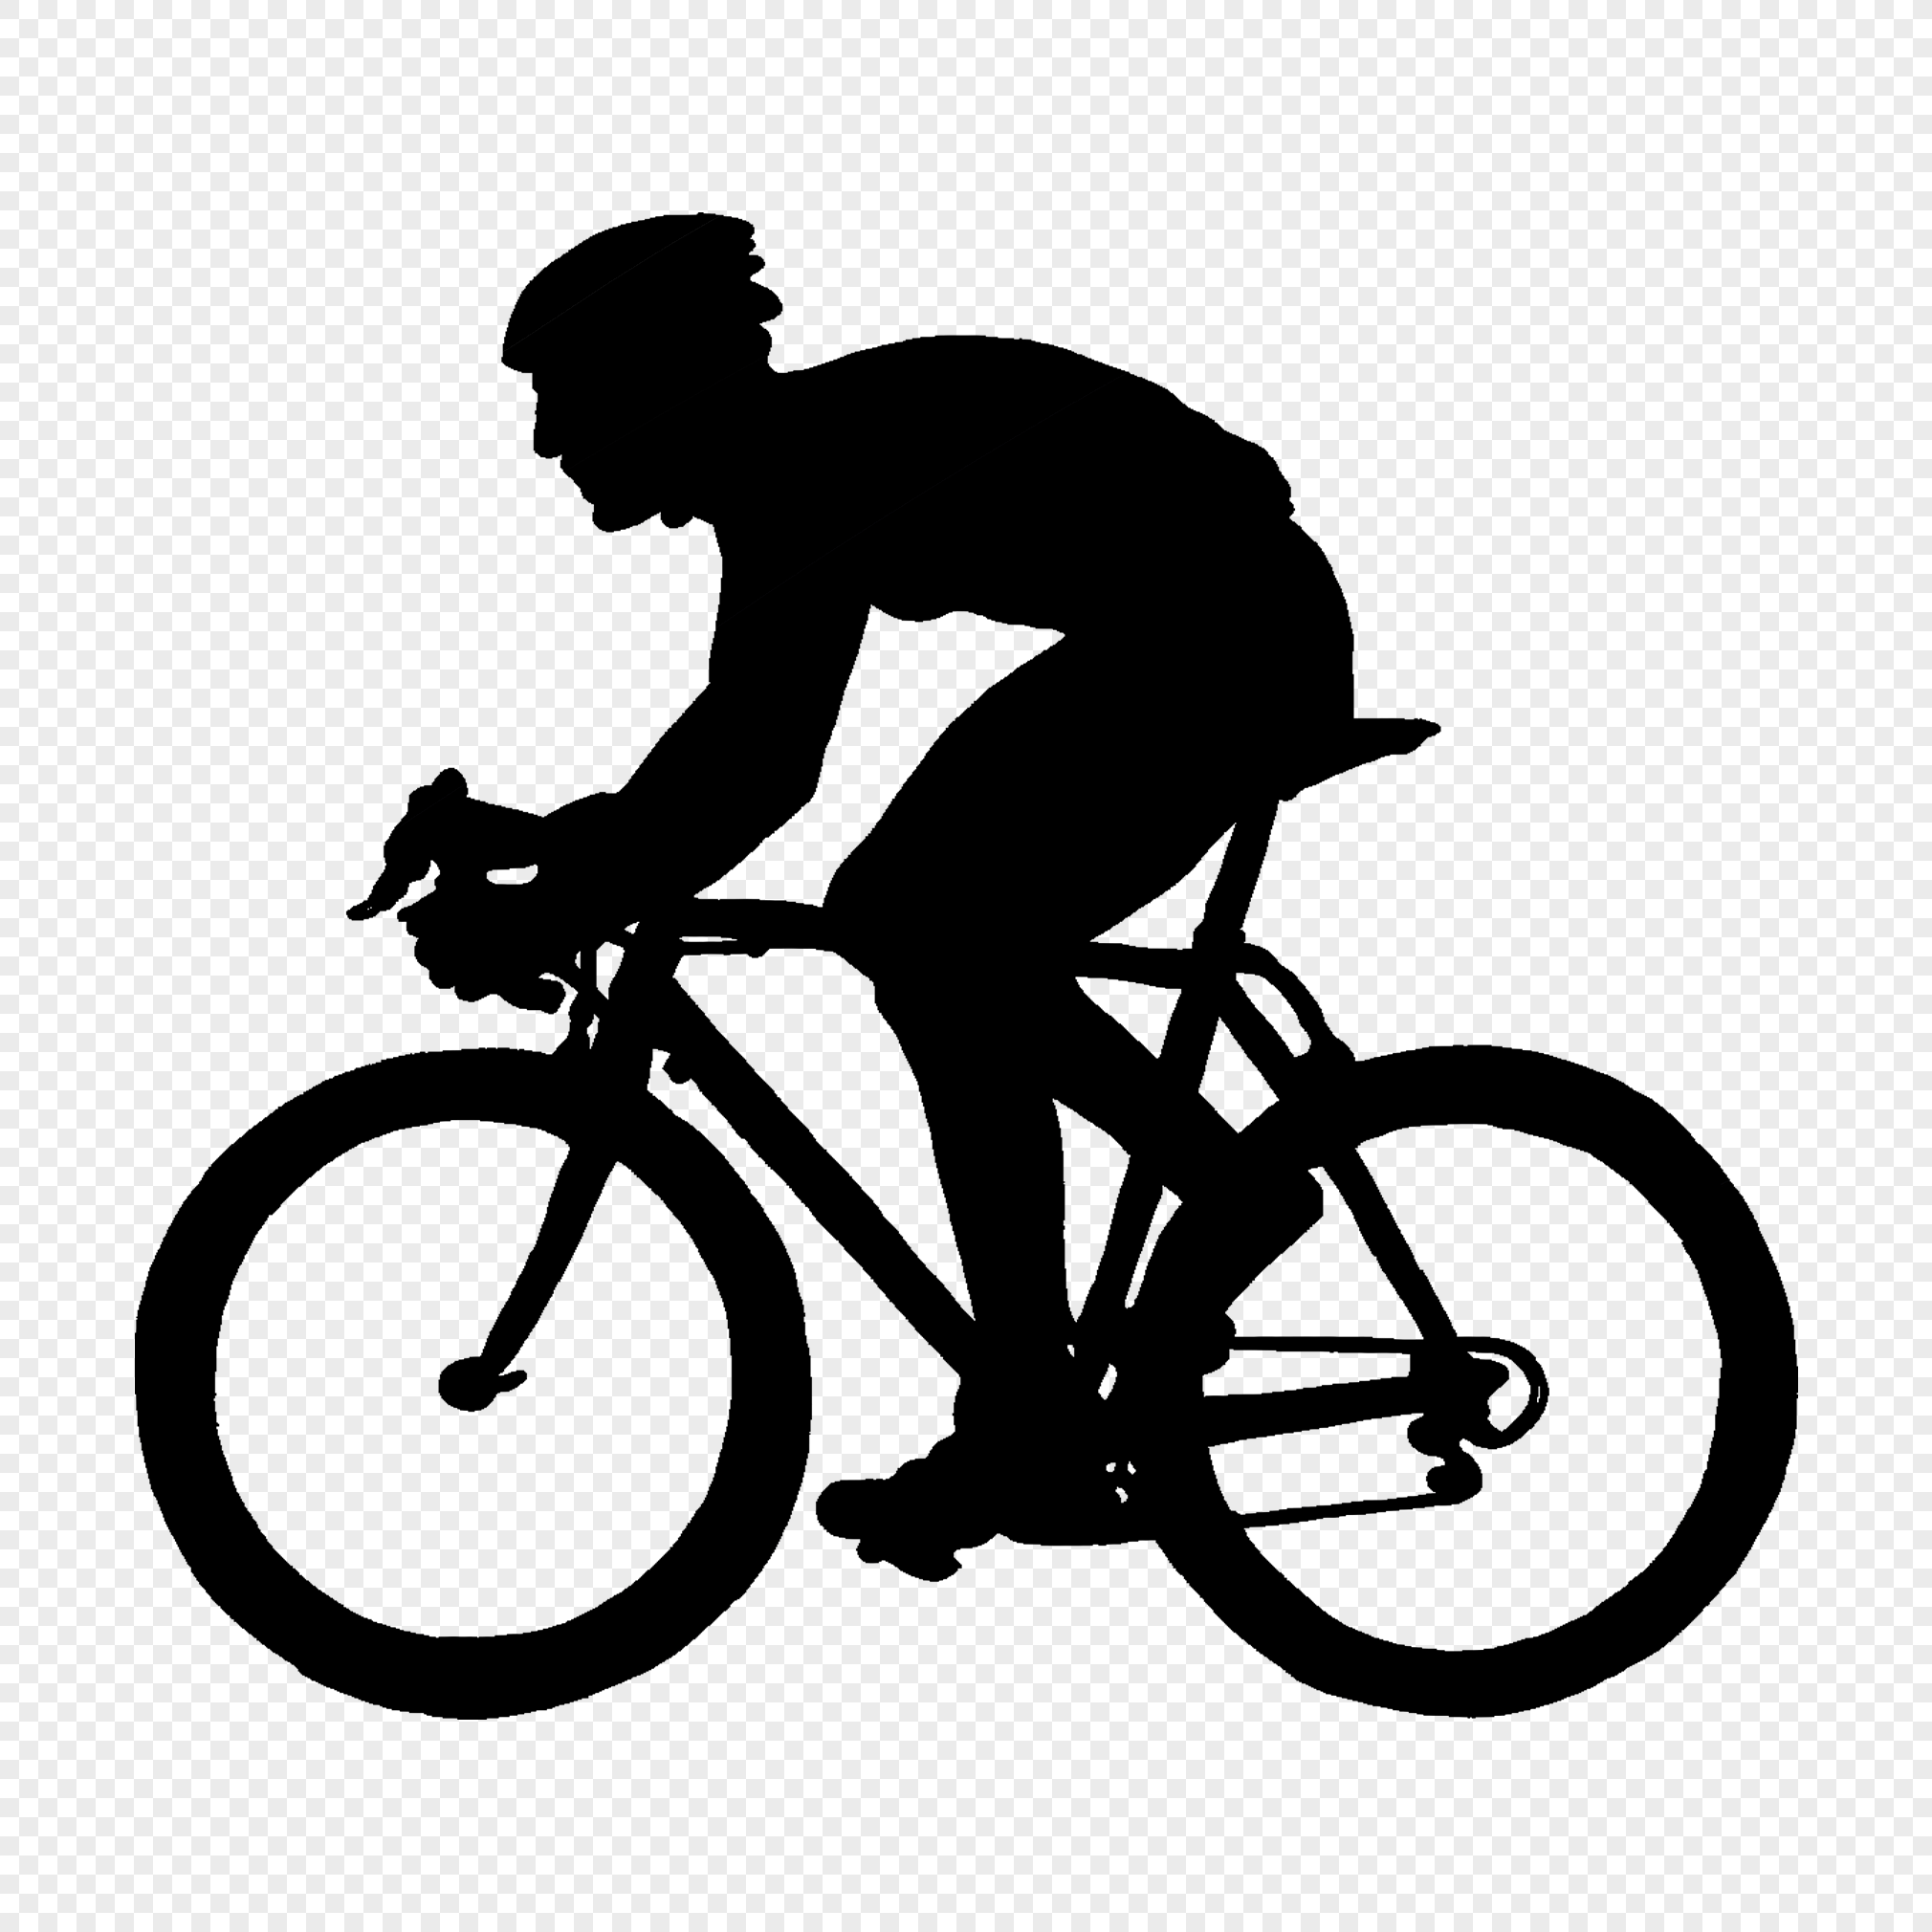 Cycling Silhouette Image Picture Free Download